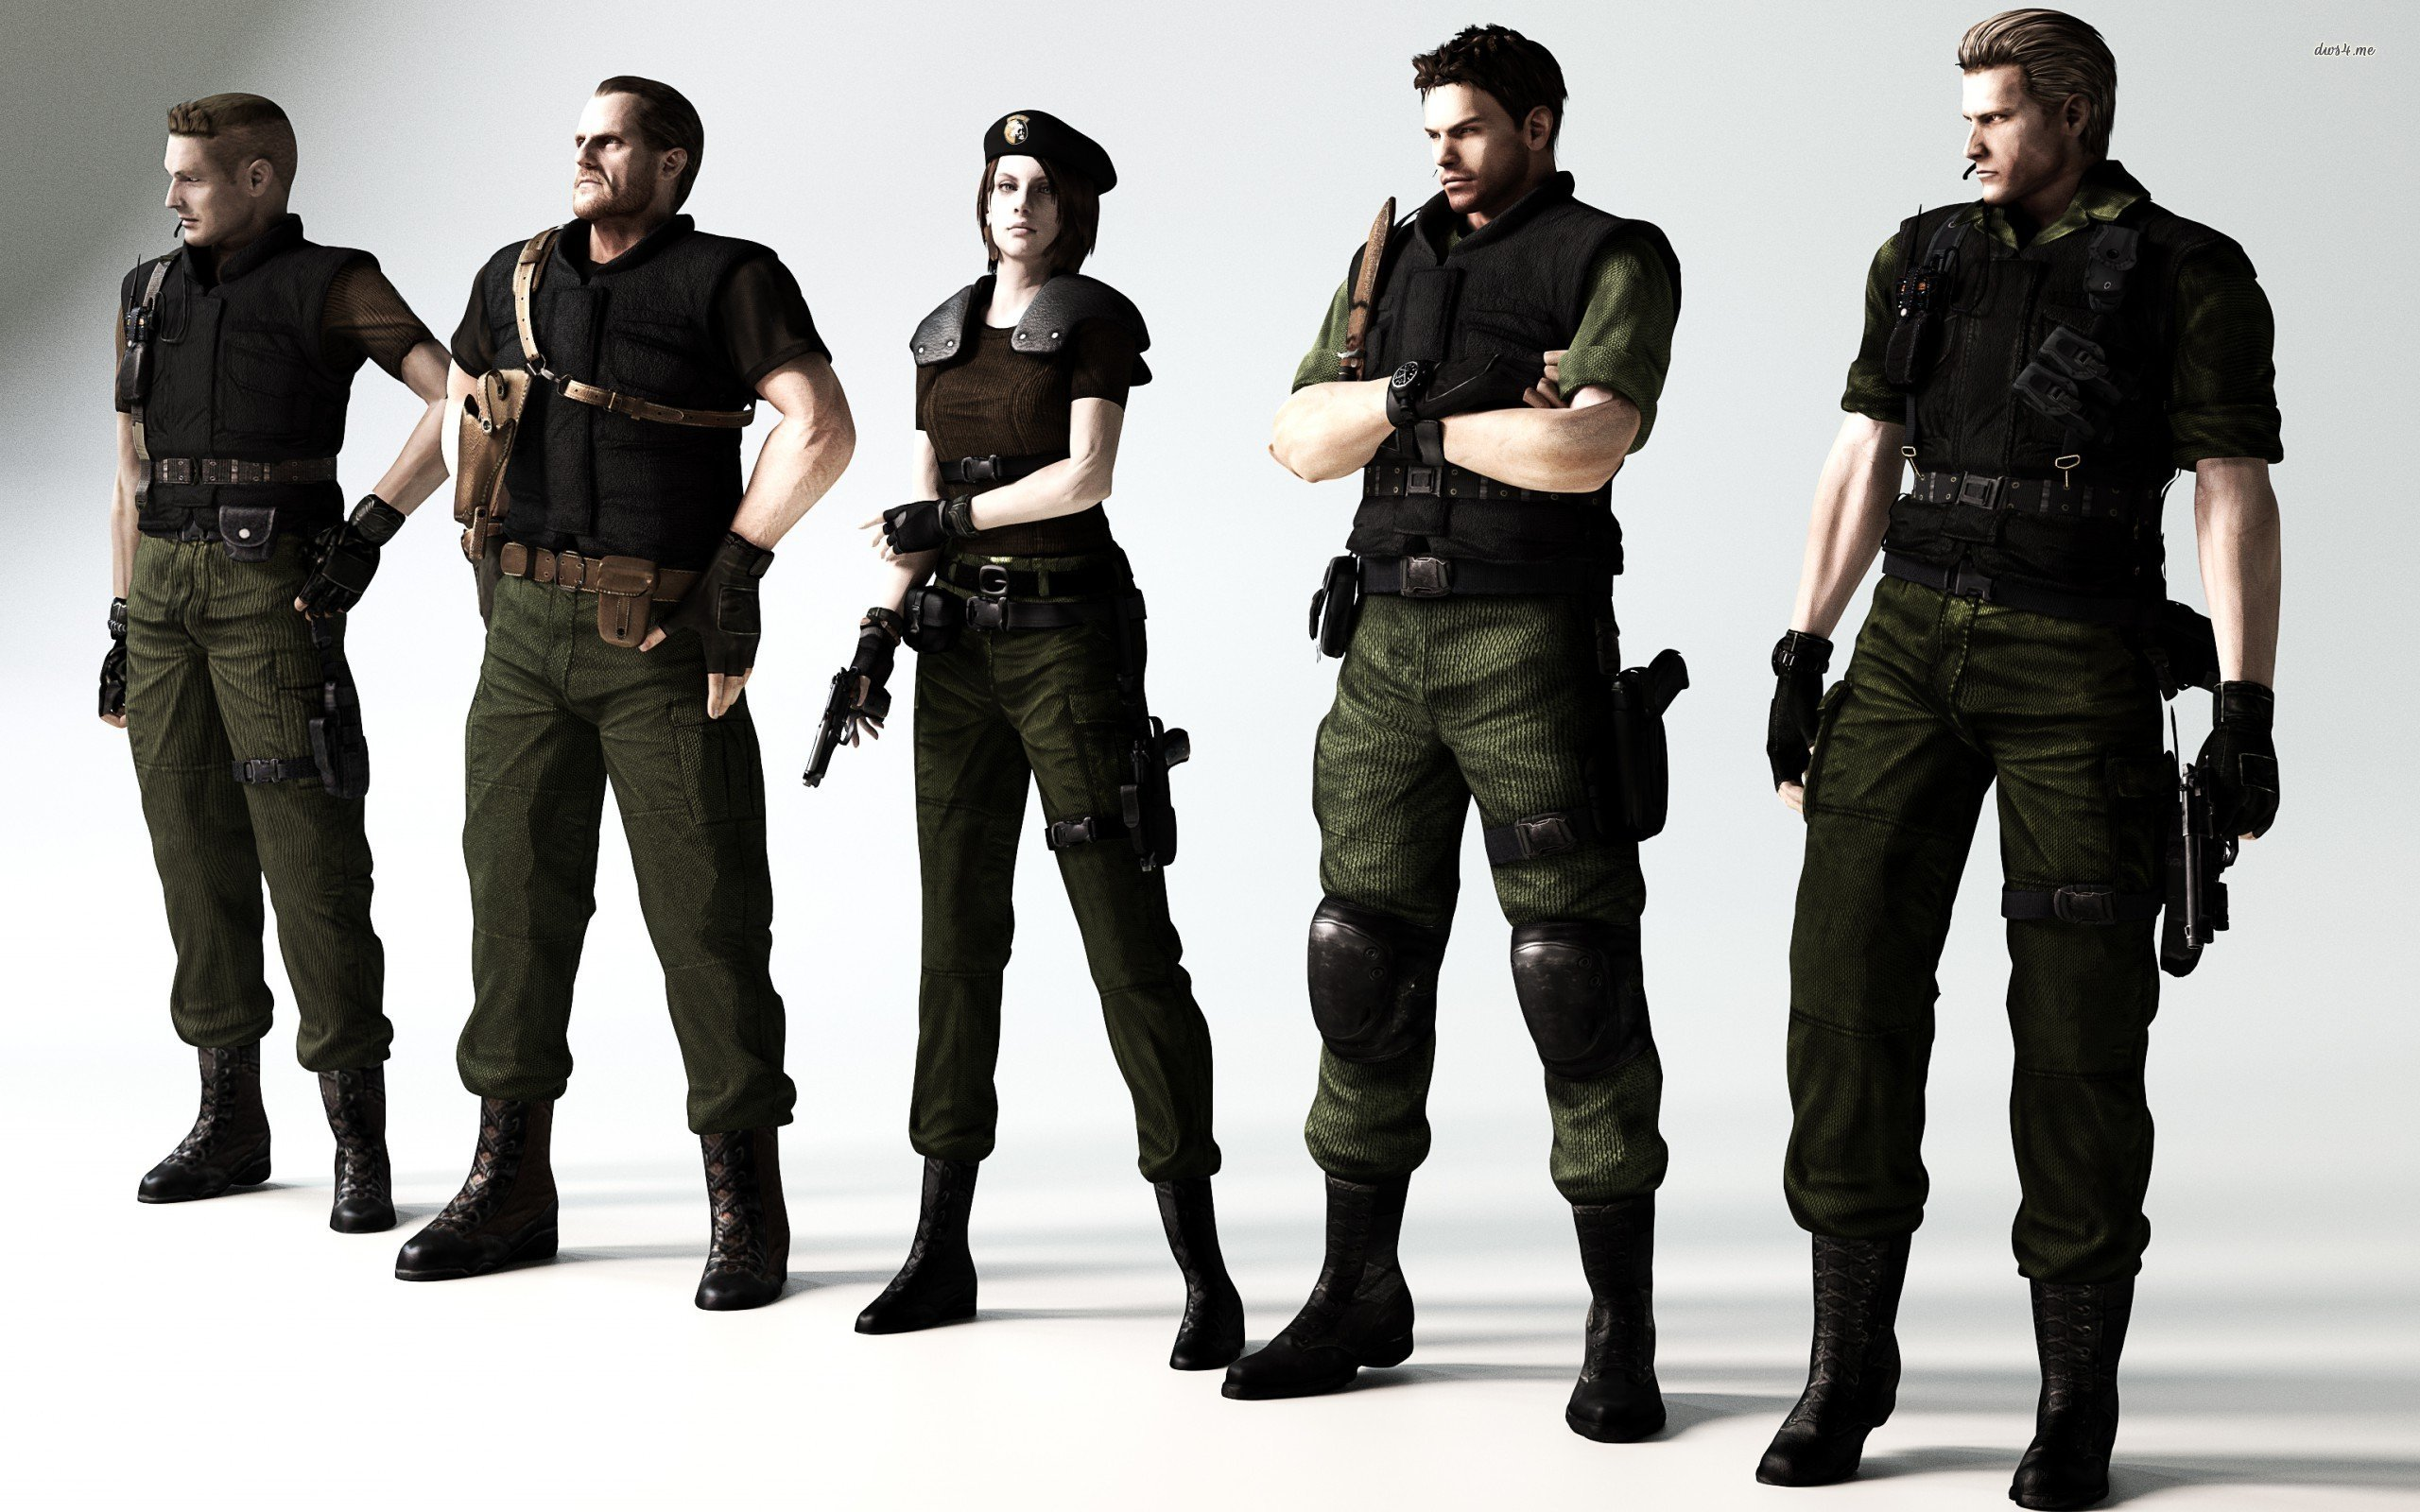 resident evil wallpapers high quality download free